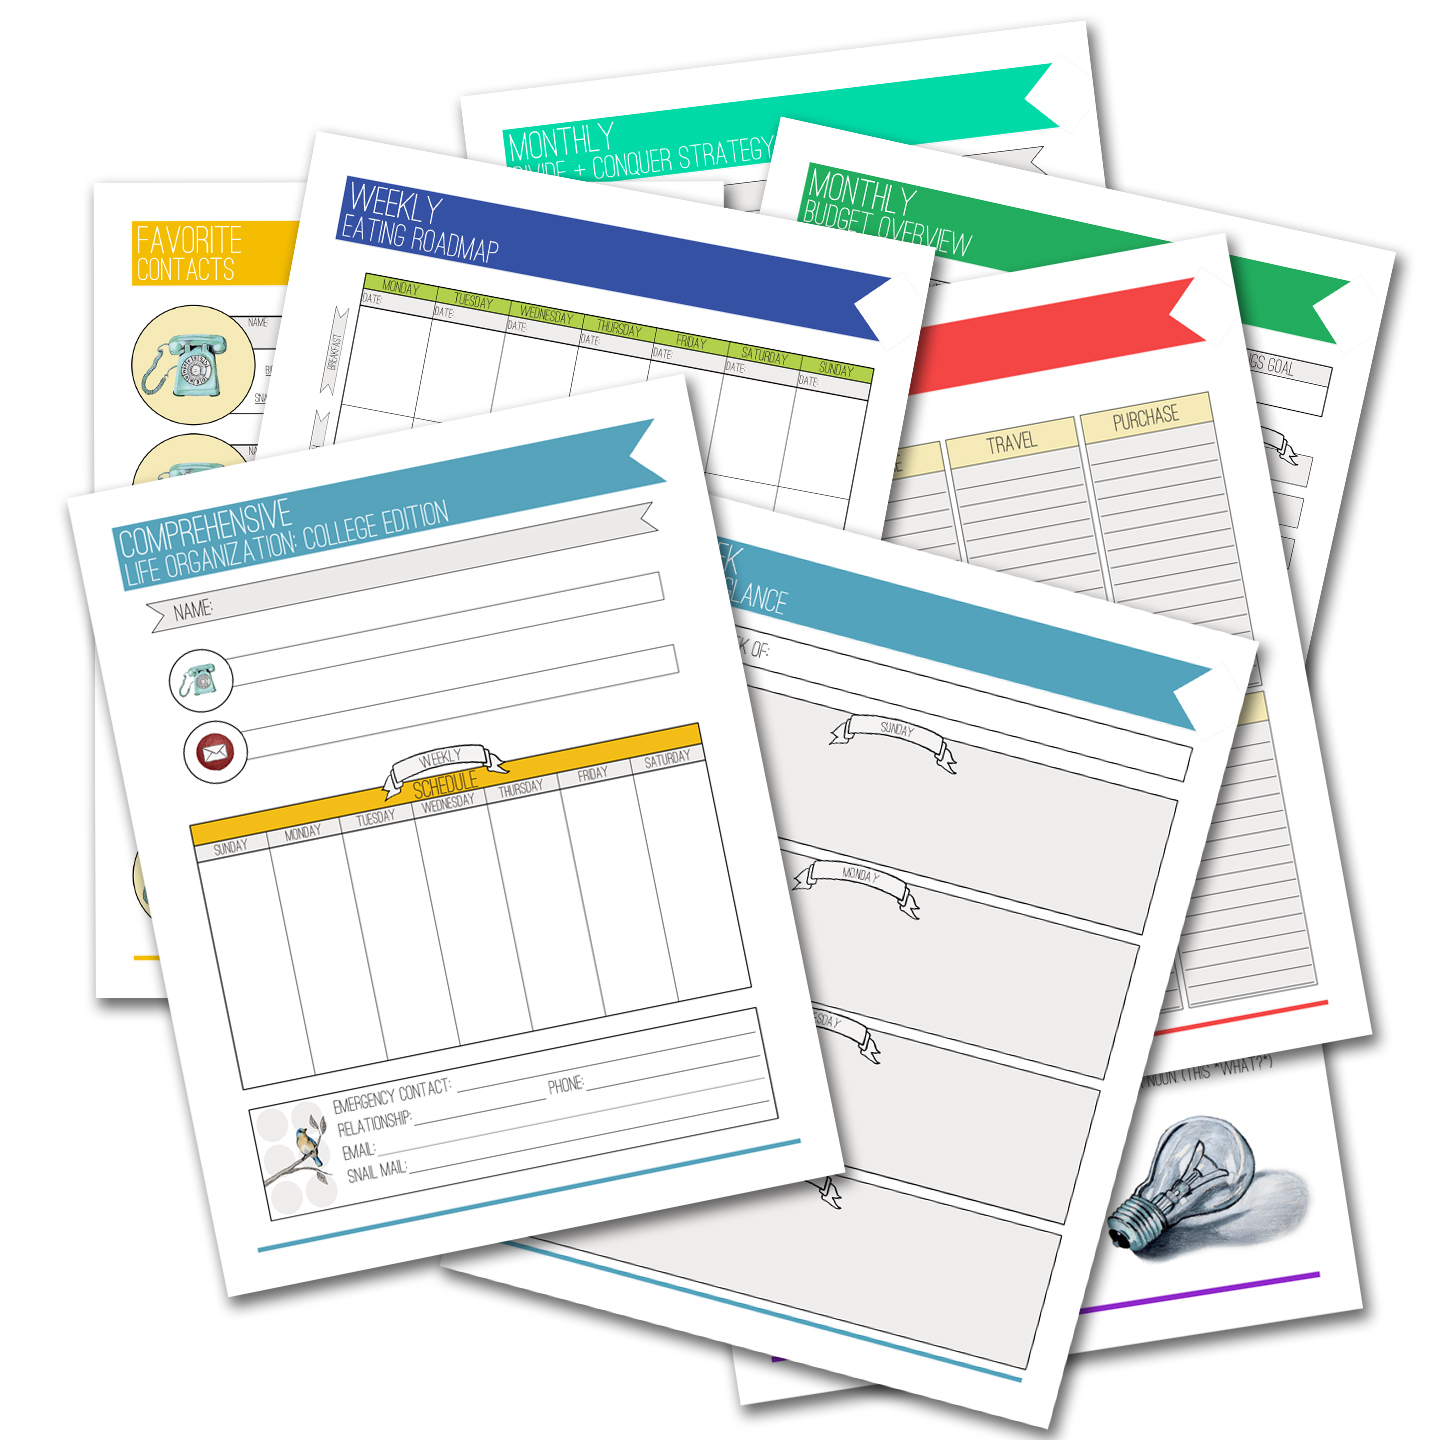 Printable Comprehensive Life Organization College Planner – The Postman's Knock